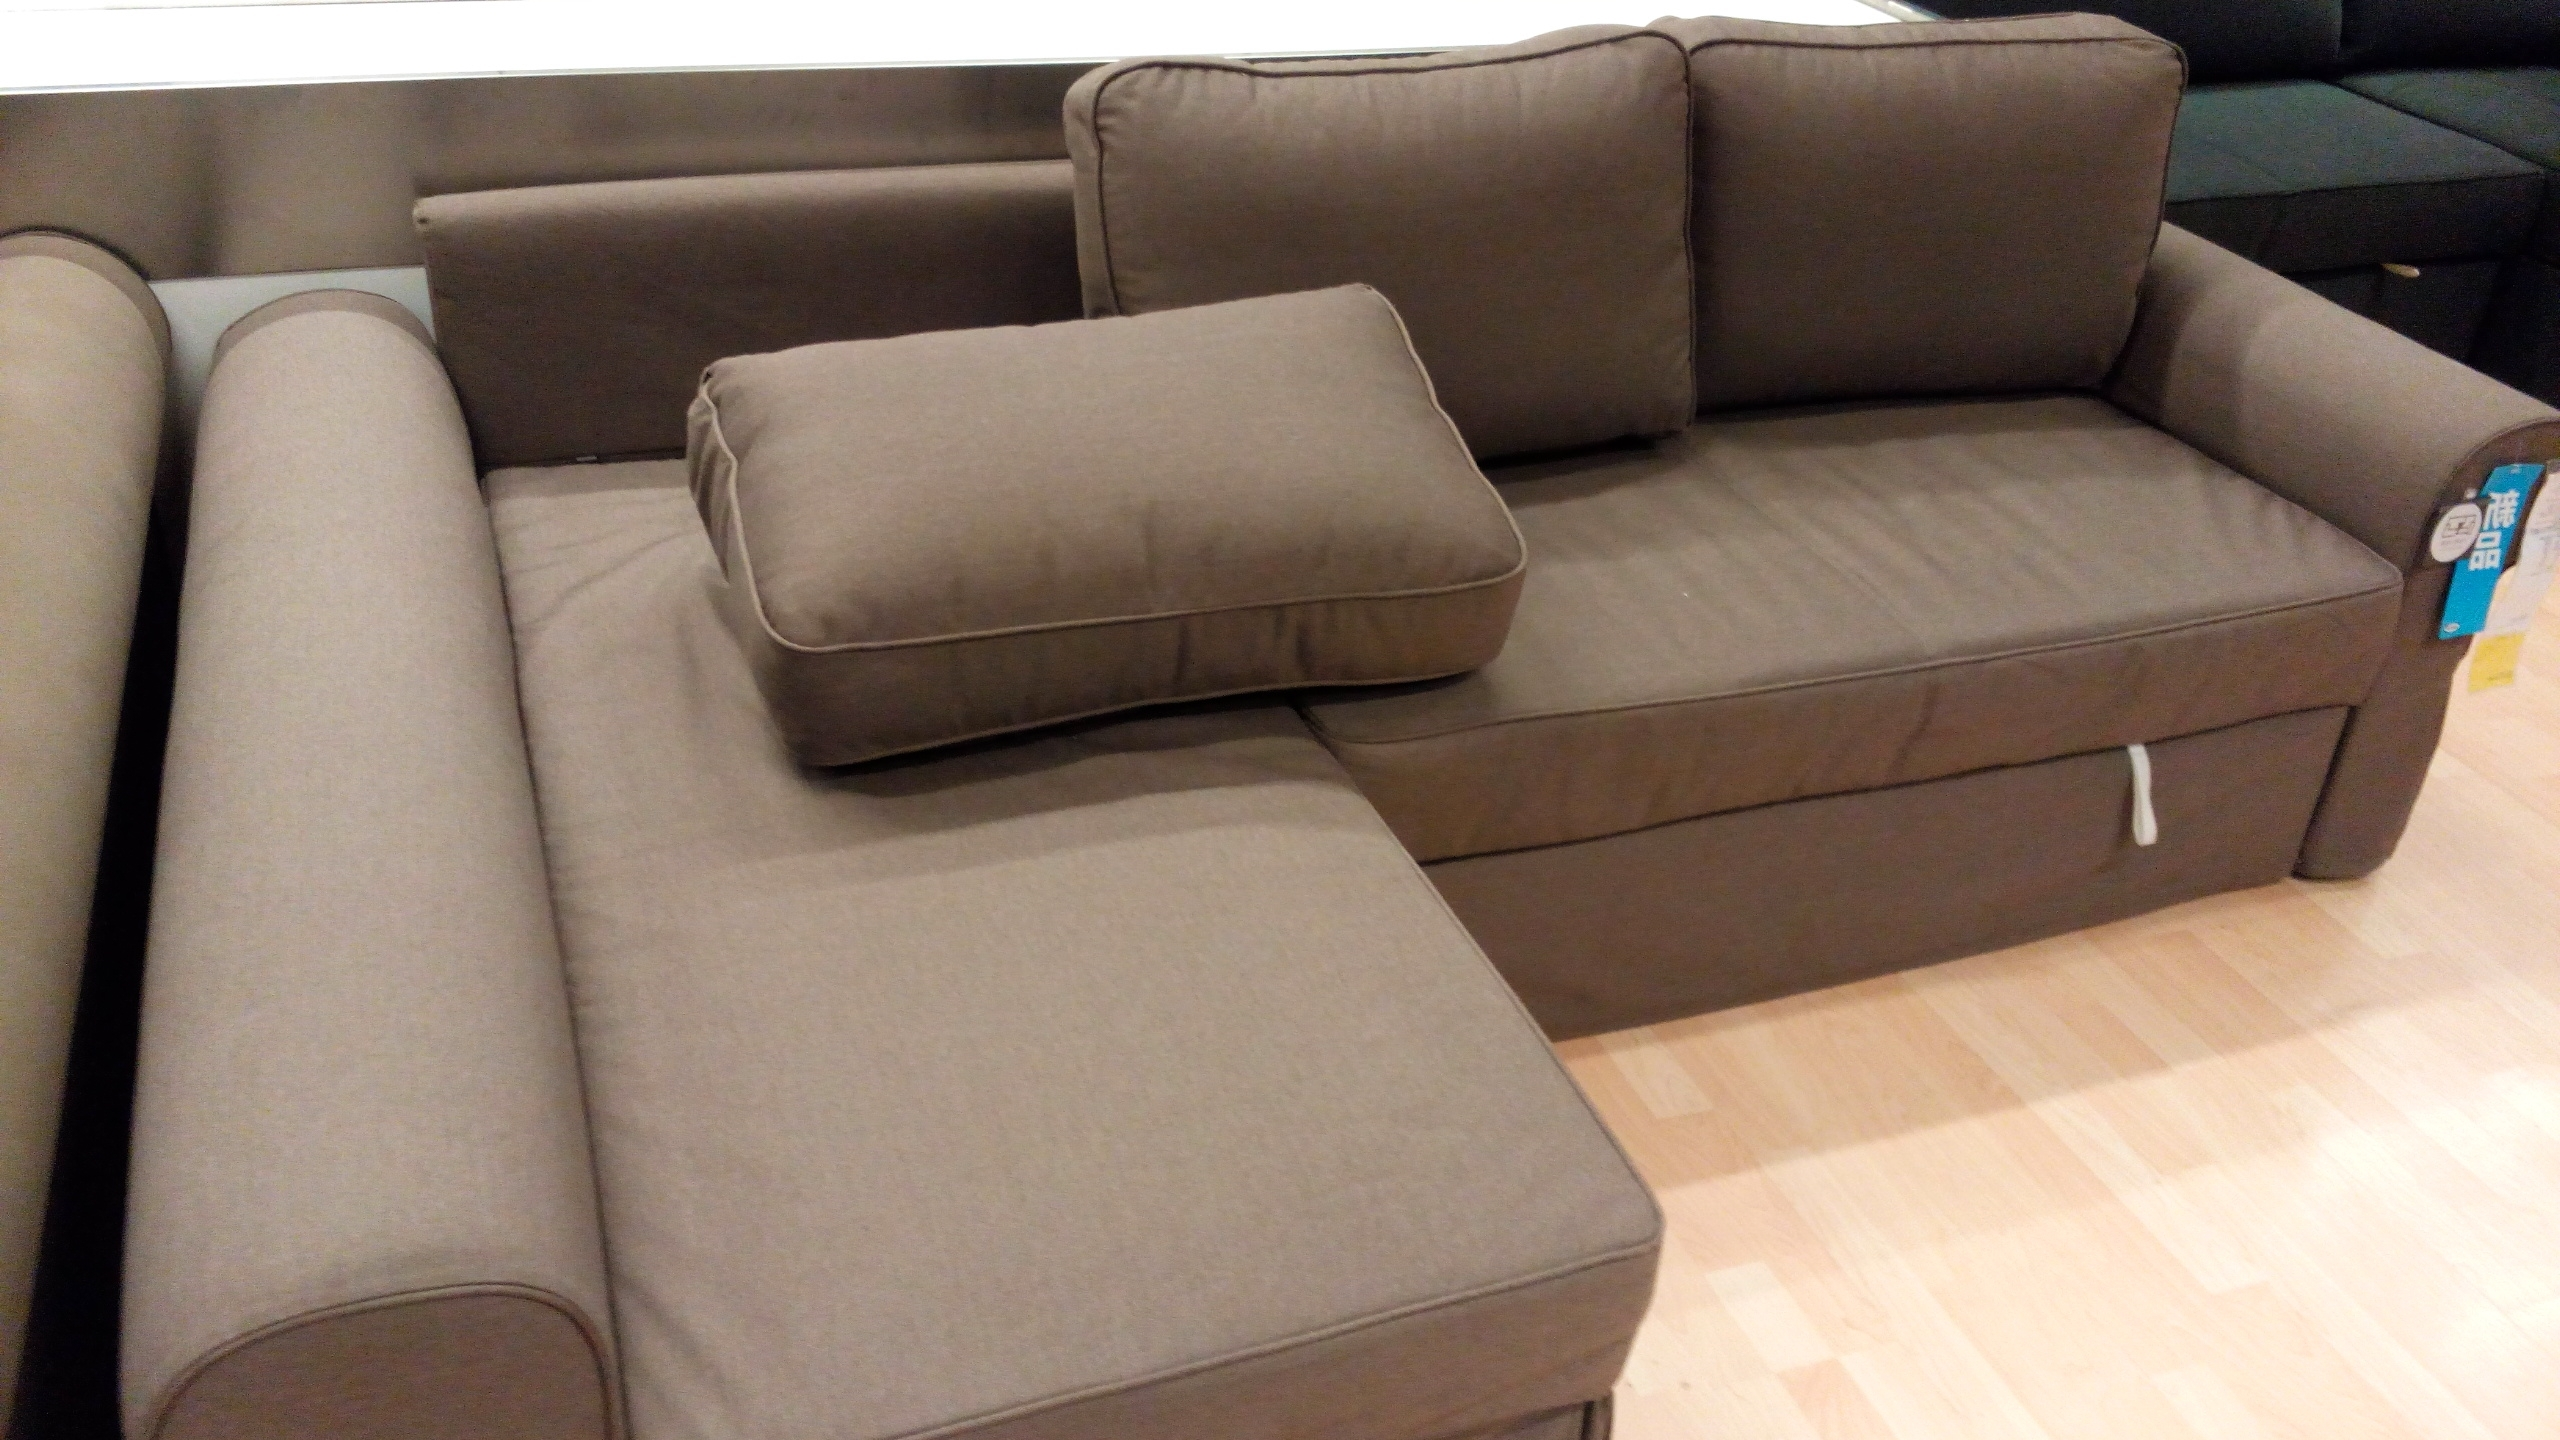 Ikea Vilasund And Backabro Review – Return Of The Sofa Bed Clones! Throughout Best And Newest Chaise Beds (Gallery 14 of 15)